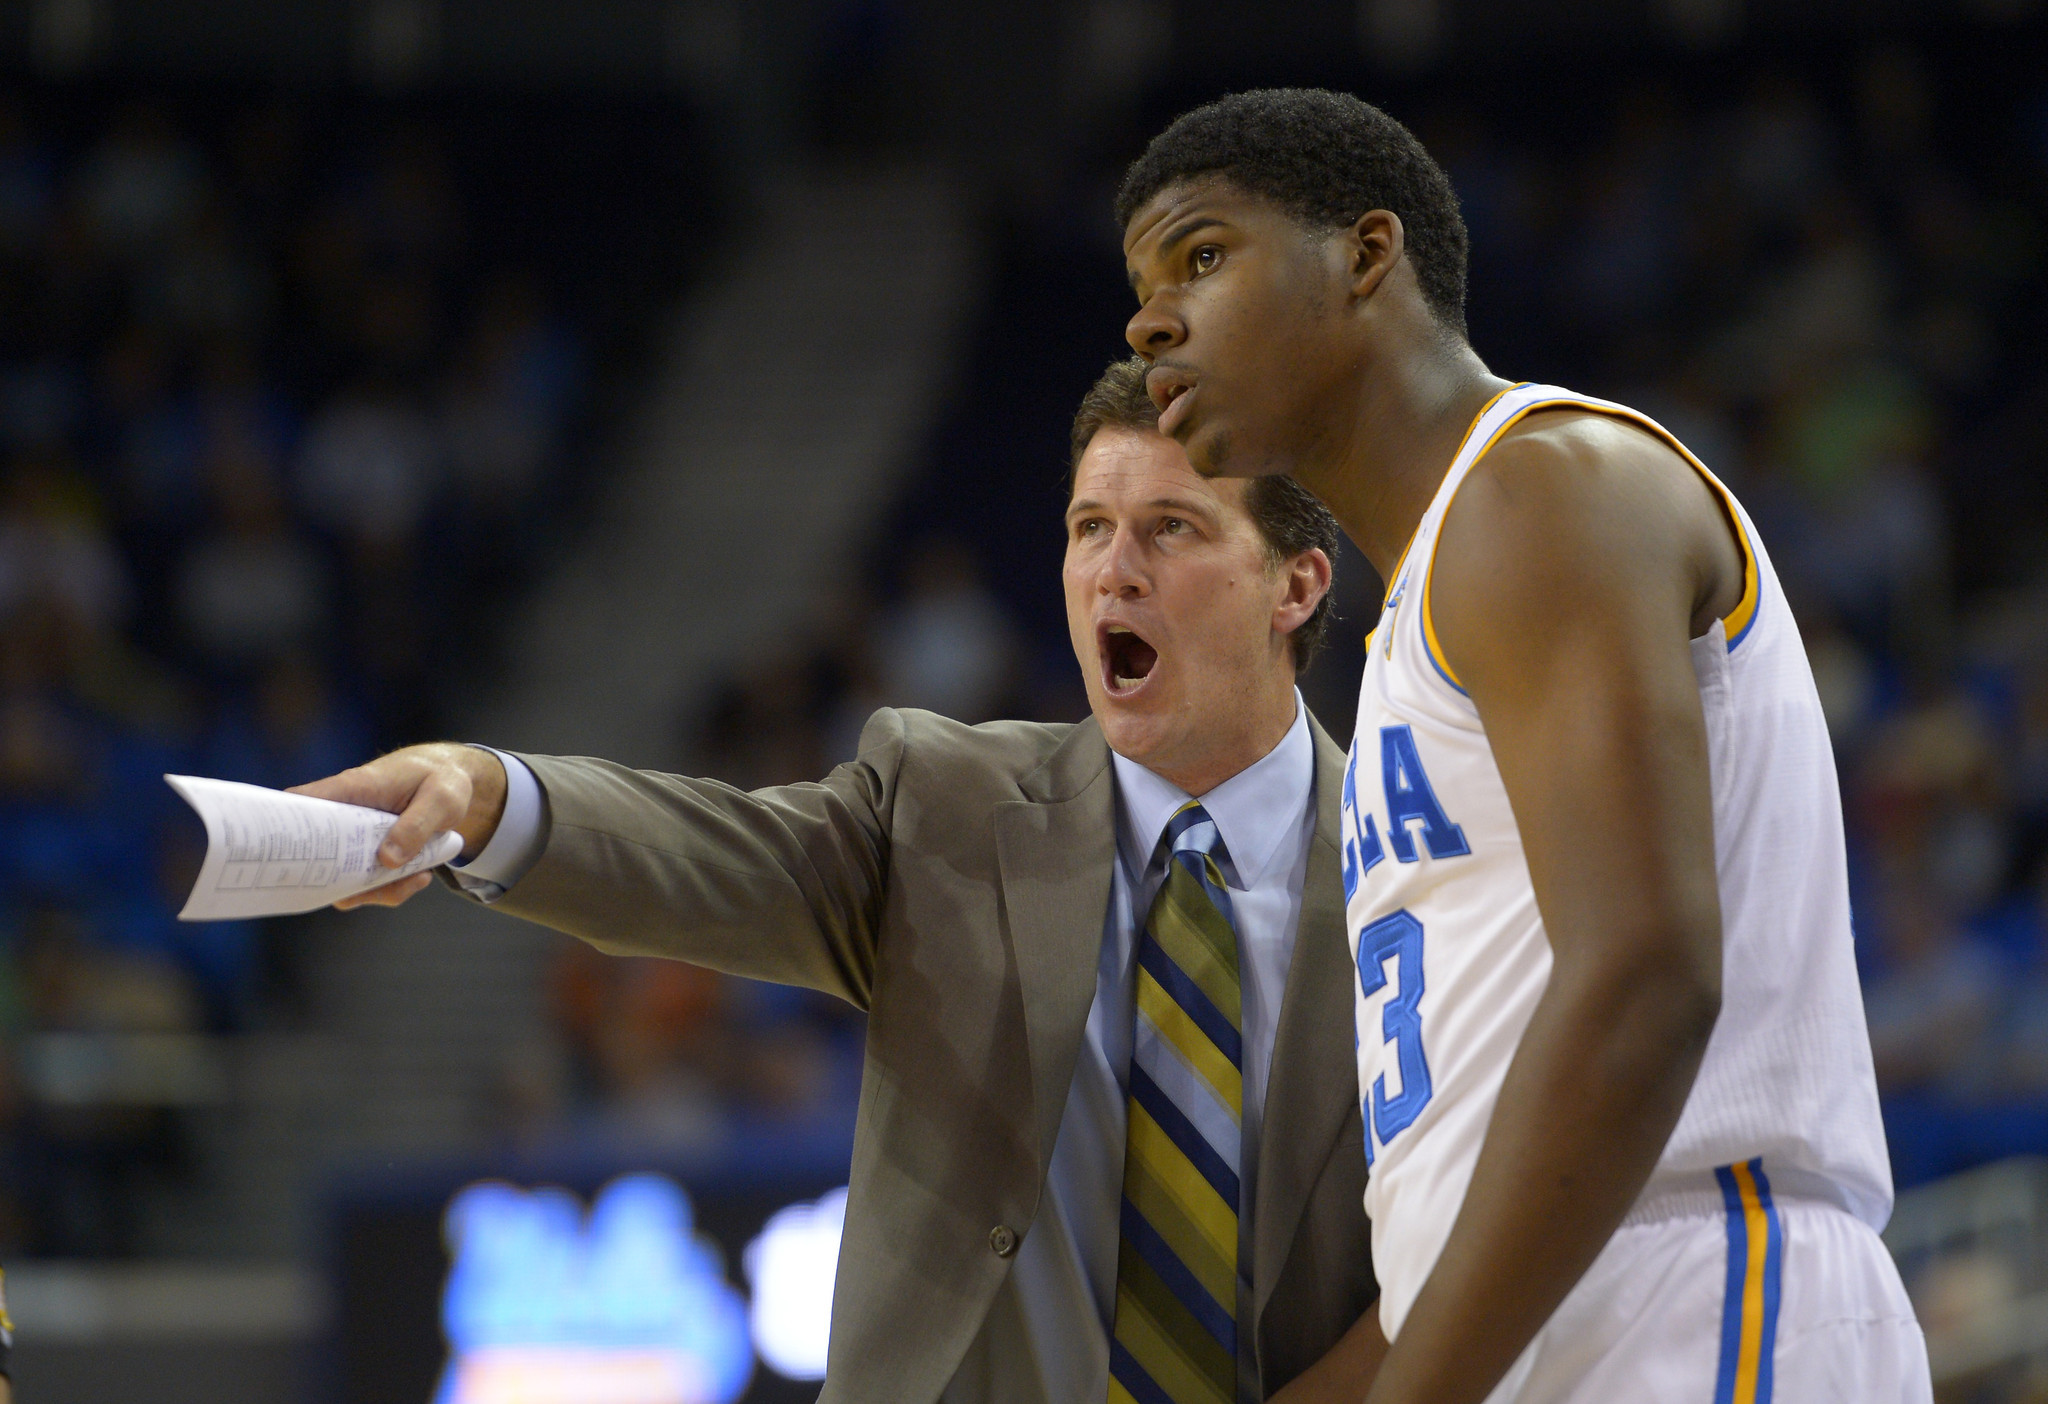 UCLA basketball: Bruins get to finish at home in 2014-15